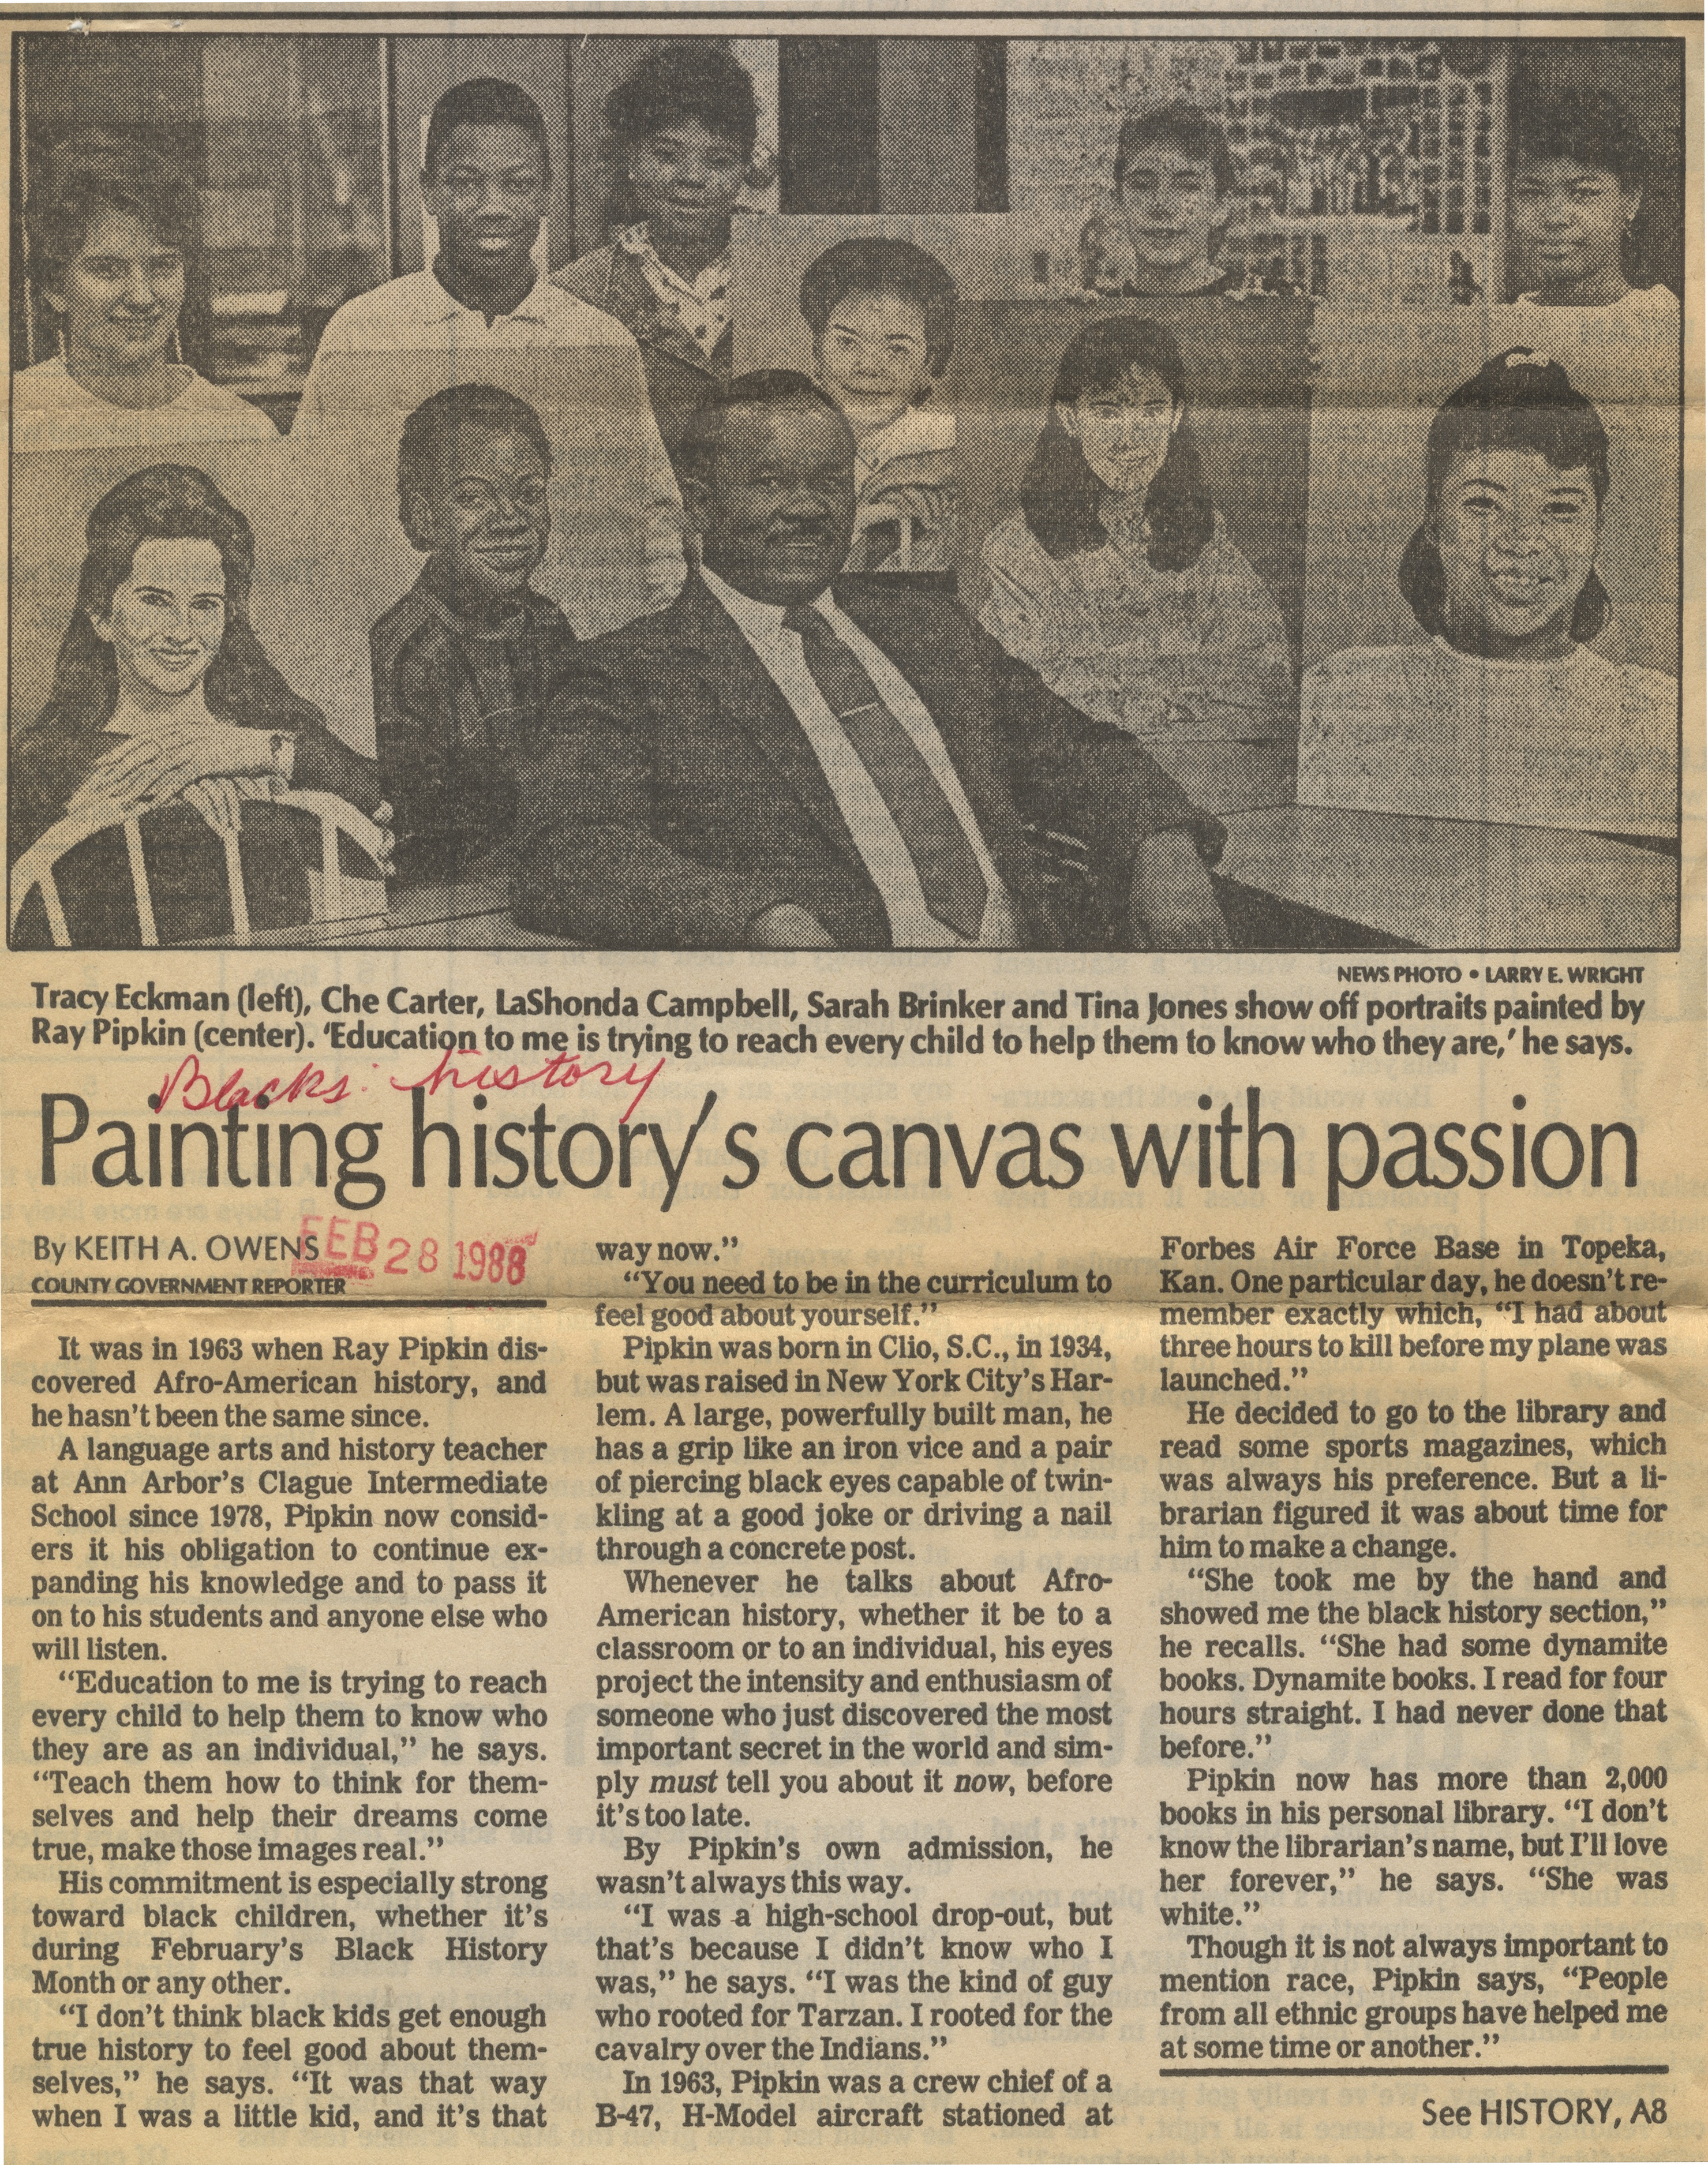 Painting History's Canvas With Passion image